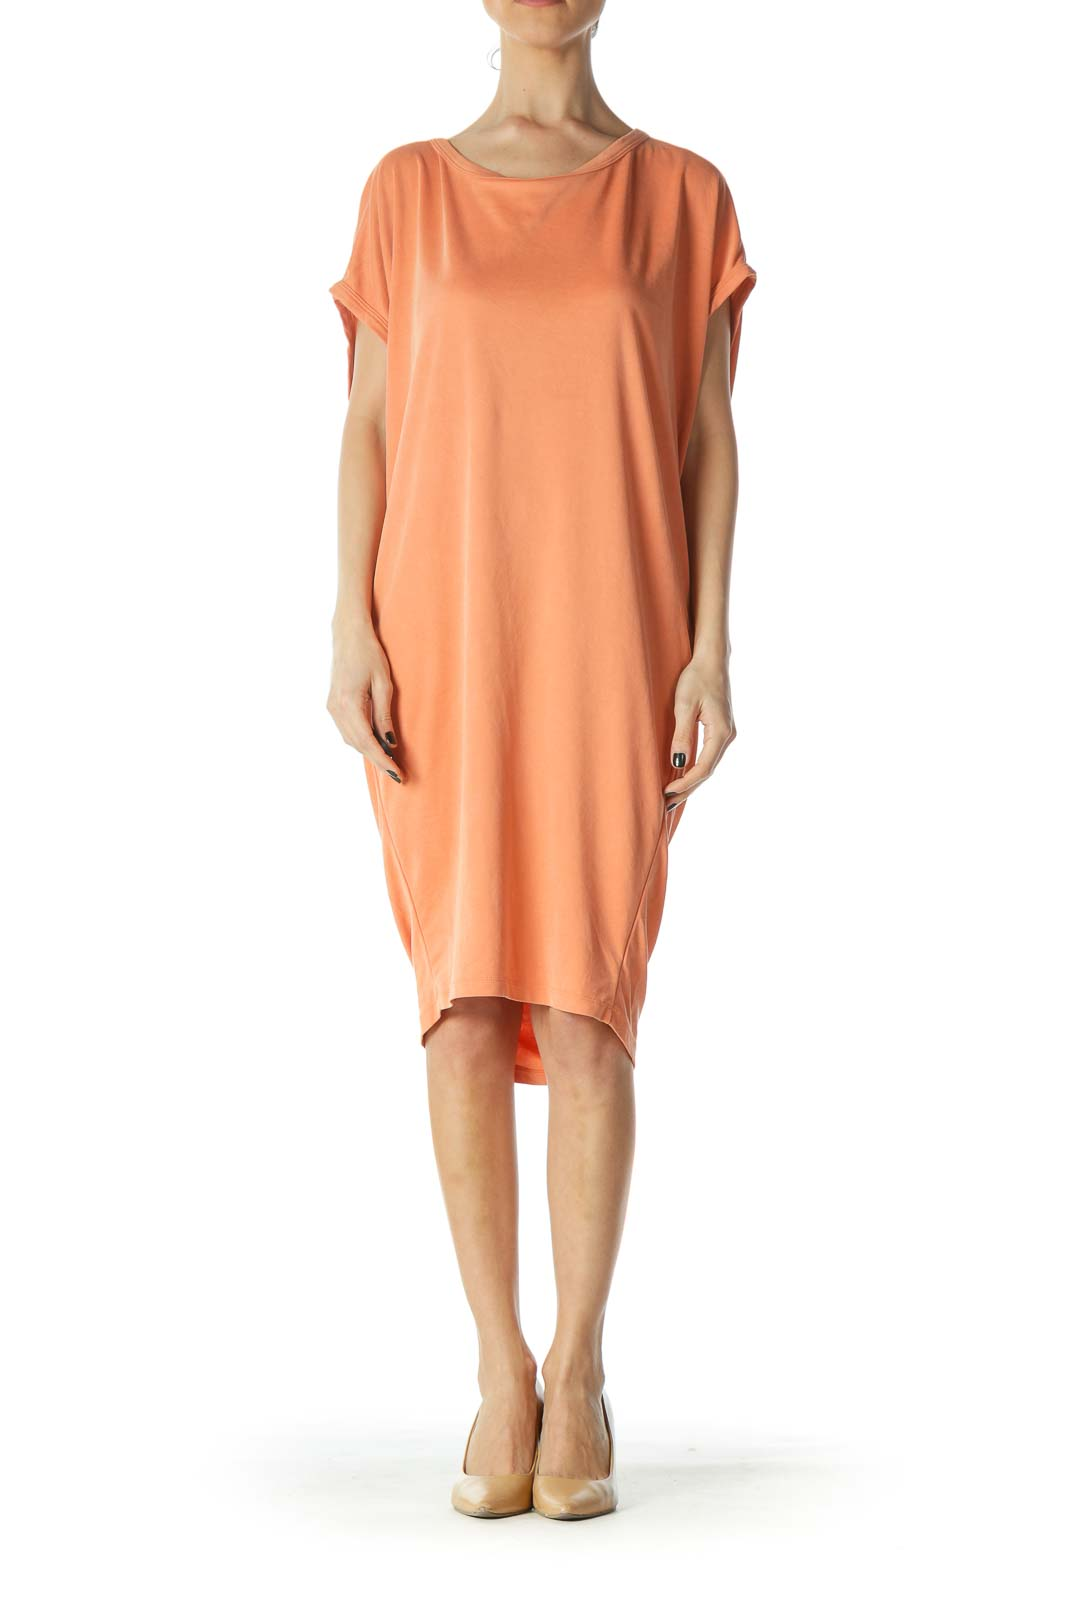 Orange Oversized Open Back Jersey Dress